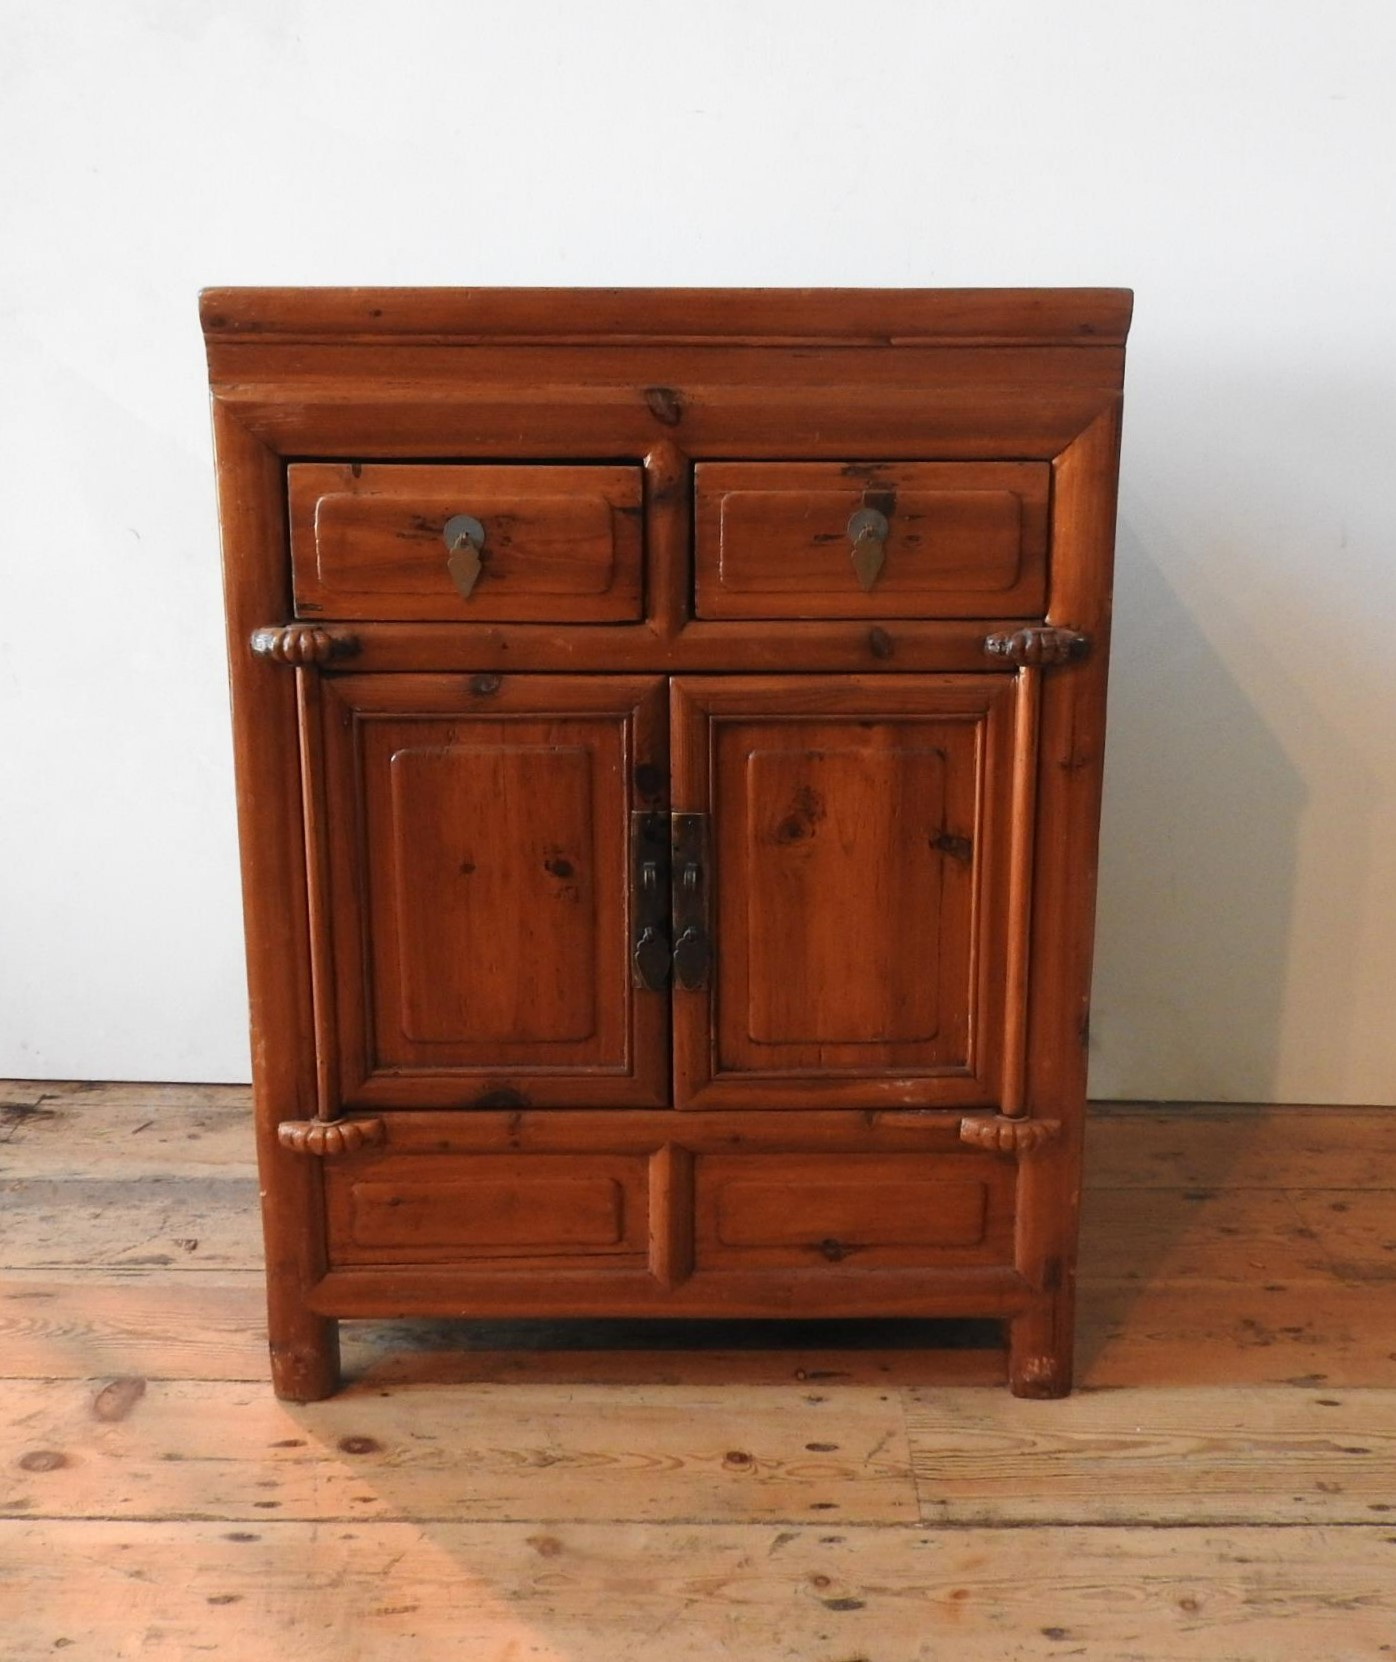 AN ORIENTAL STYLE HARDWOOD TWO DOOR CUPBOARD, with two drawers, 86 x 64 x 50cm - Image 2 of 3